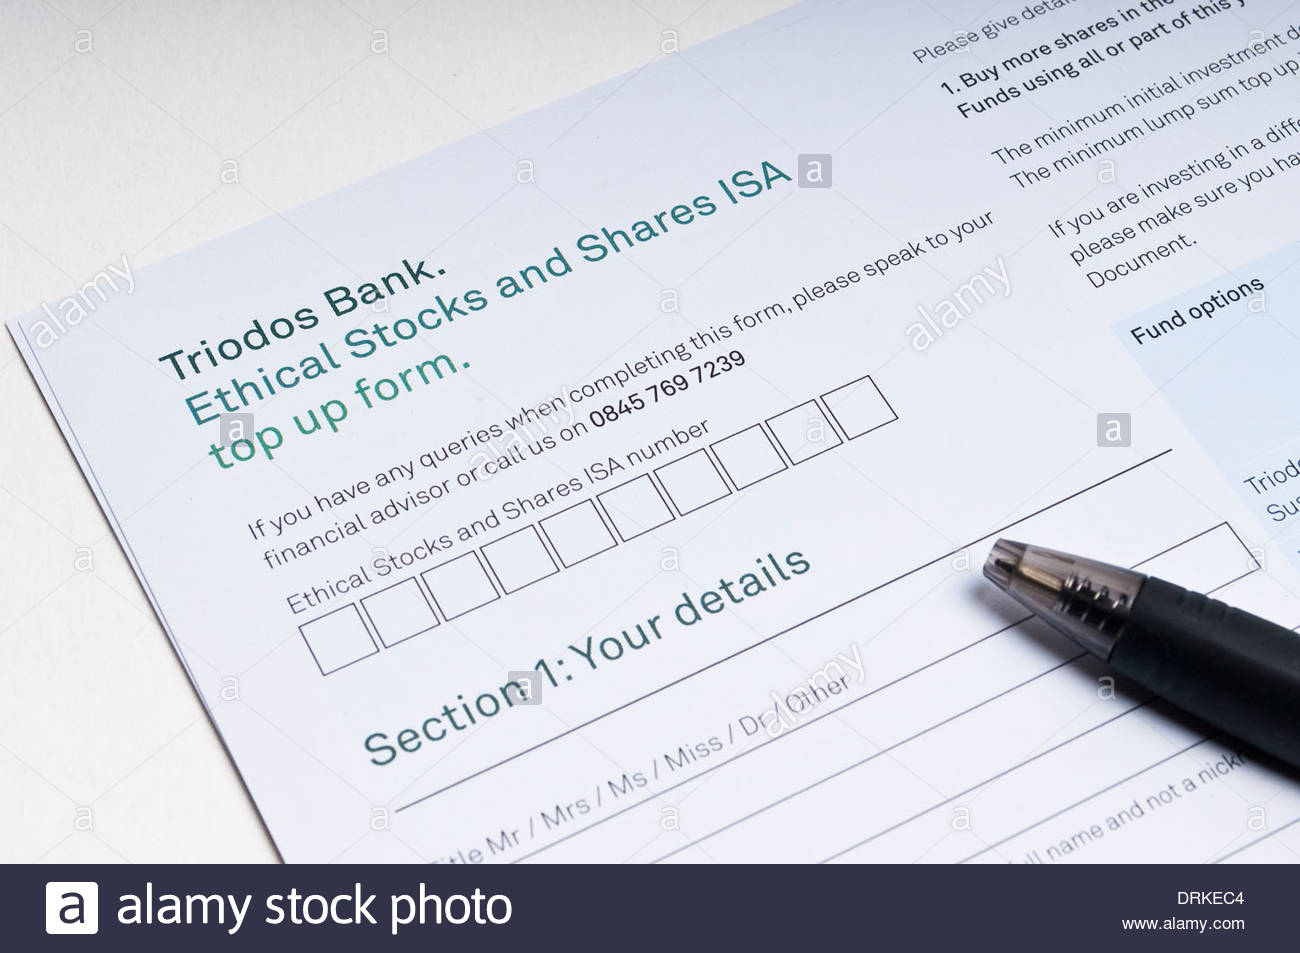 Application form for Triodos Bank Ethical Stocks and Shares ISA - Stock Image